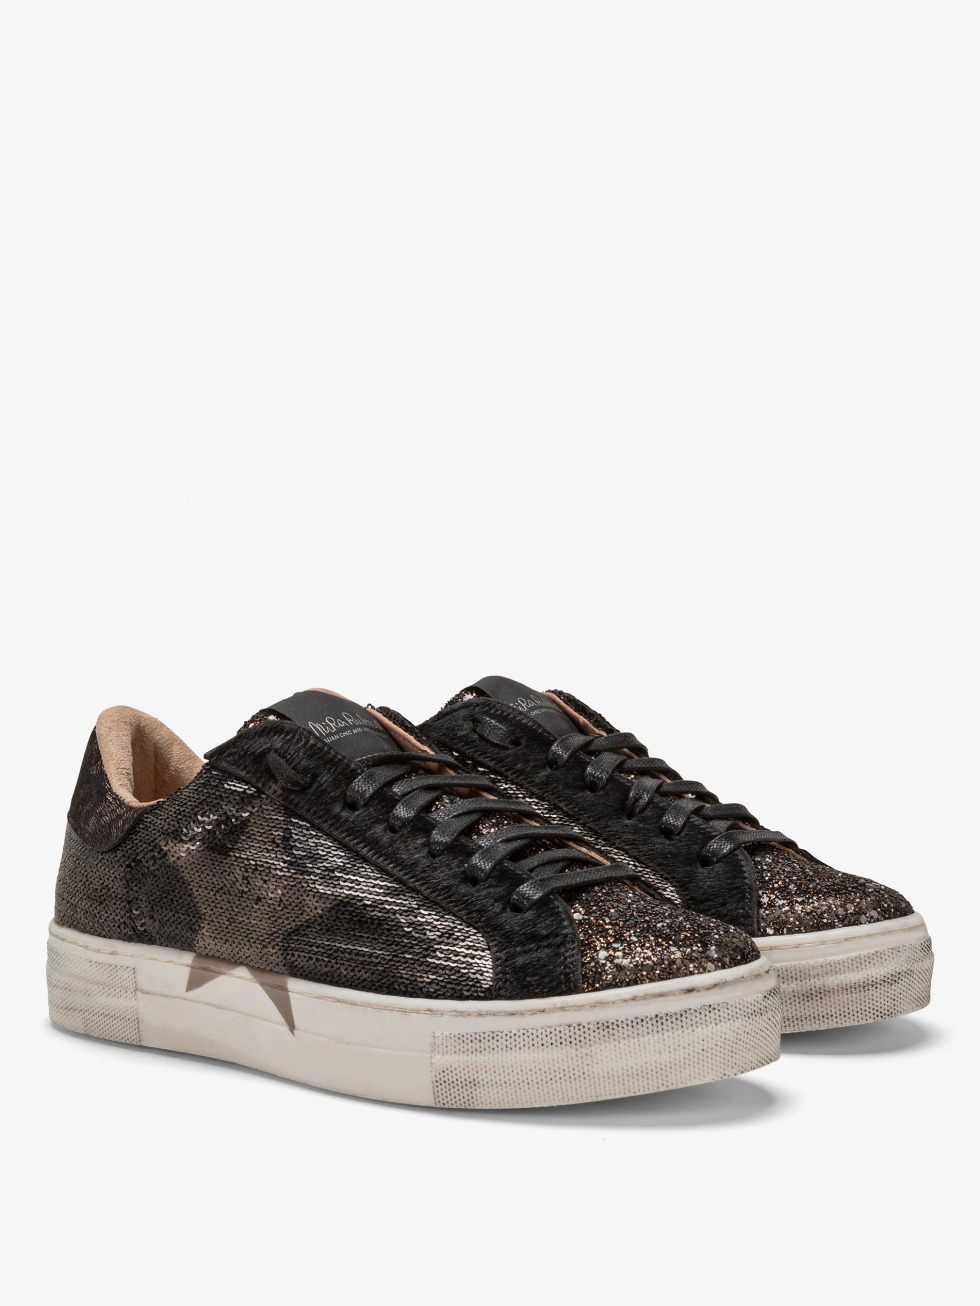 Martini Dazzling Black Sneakers - Bronze Star